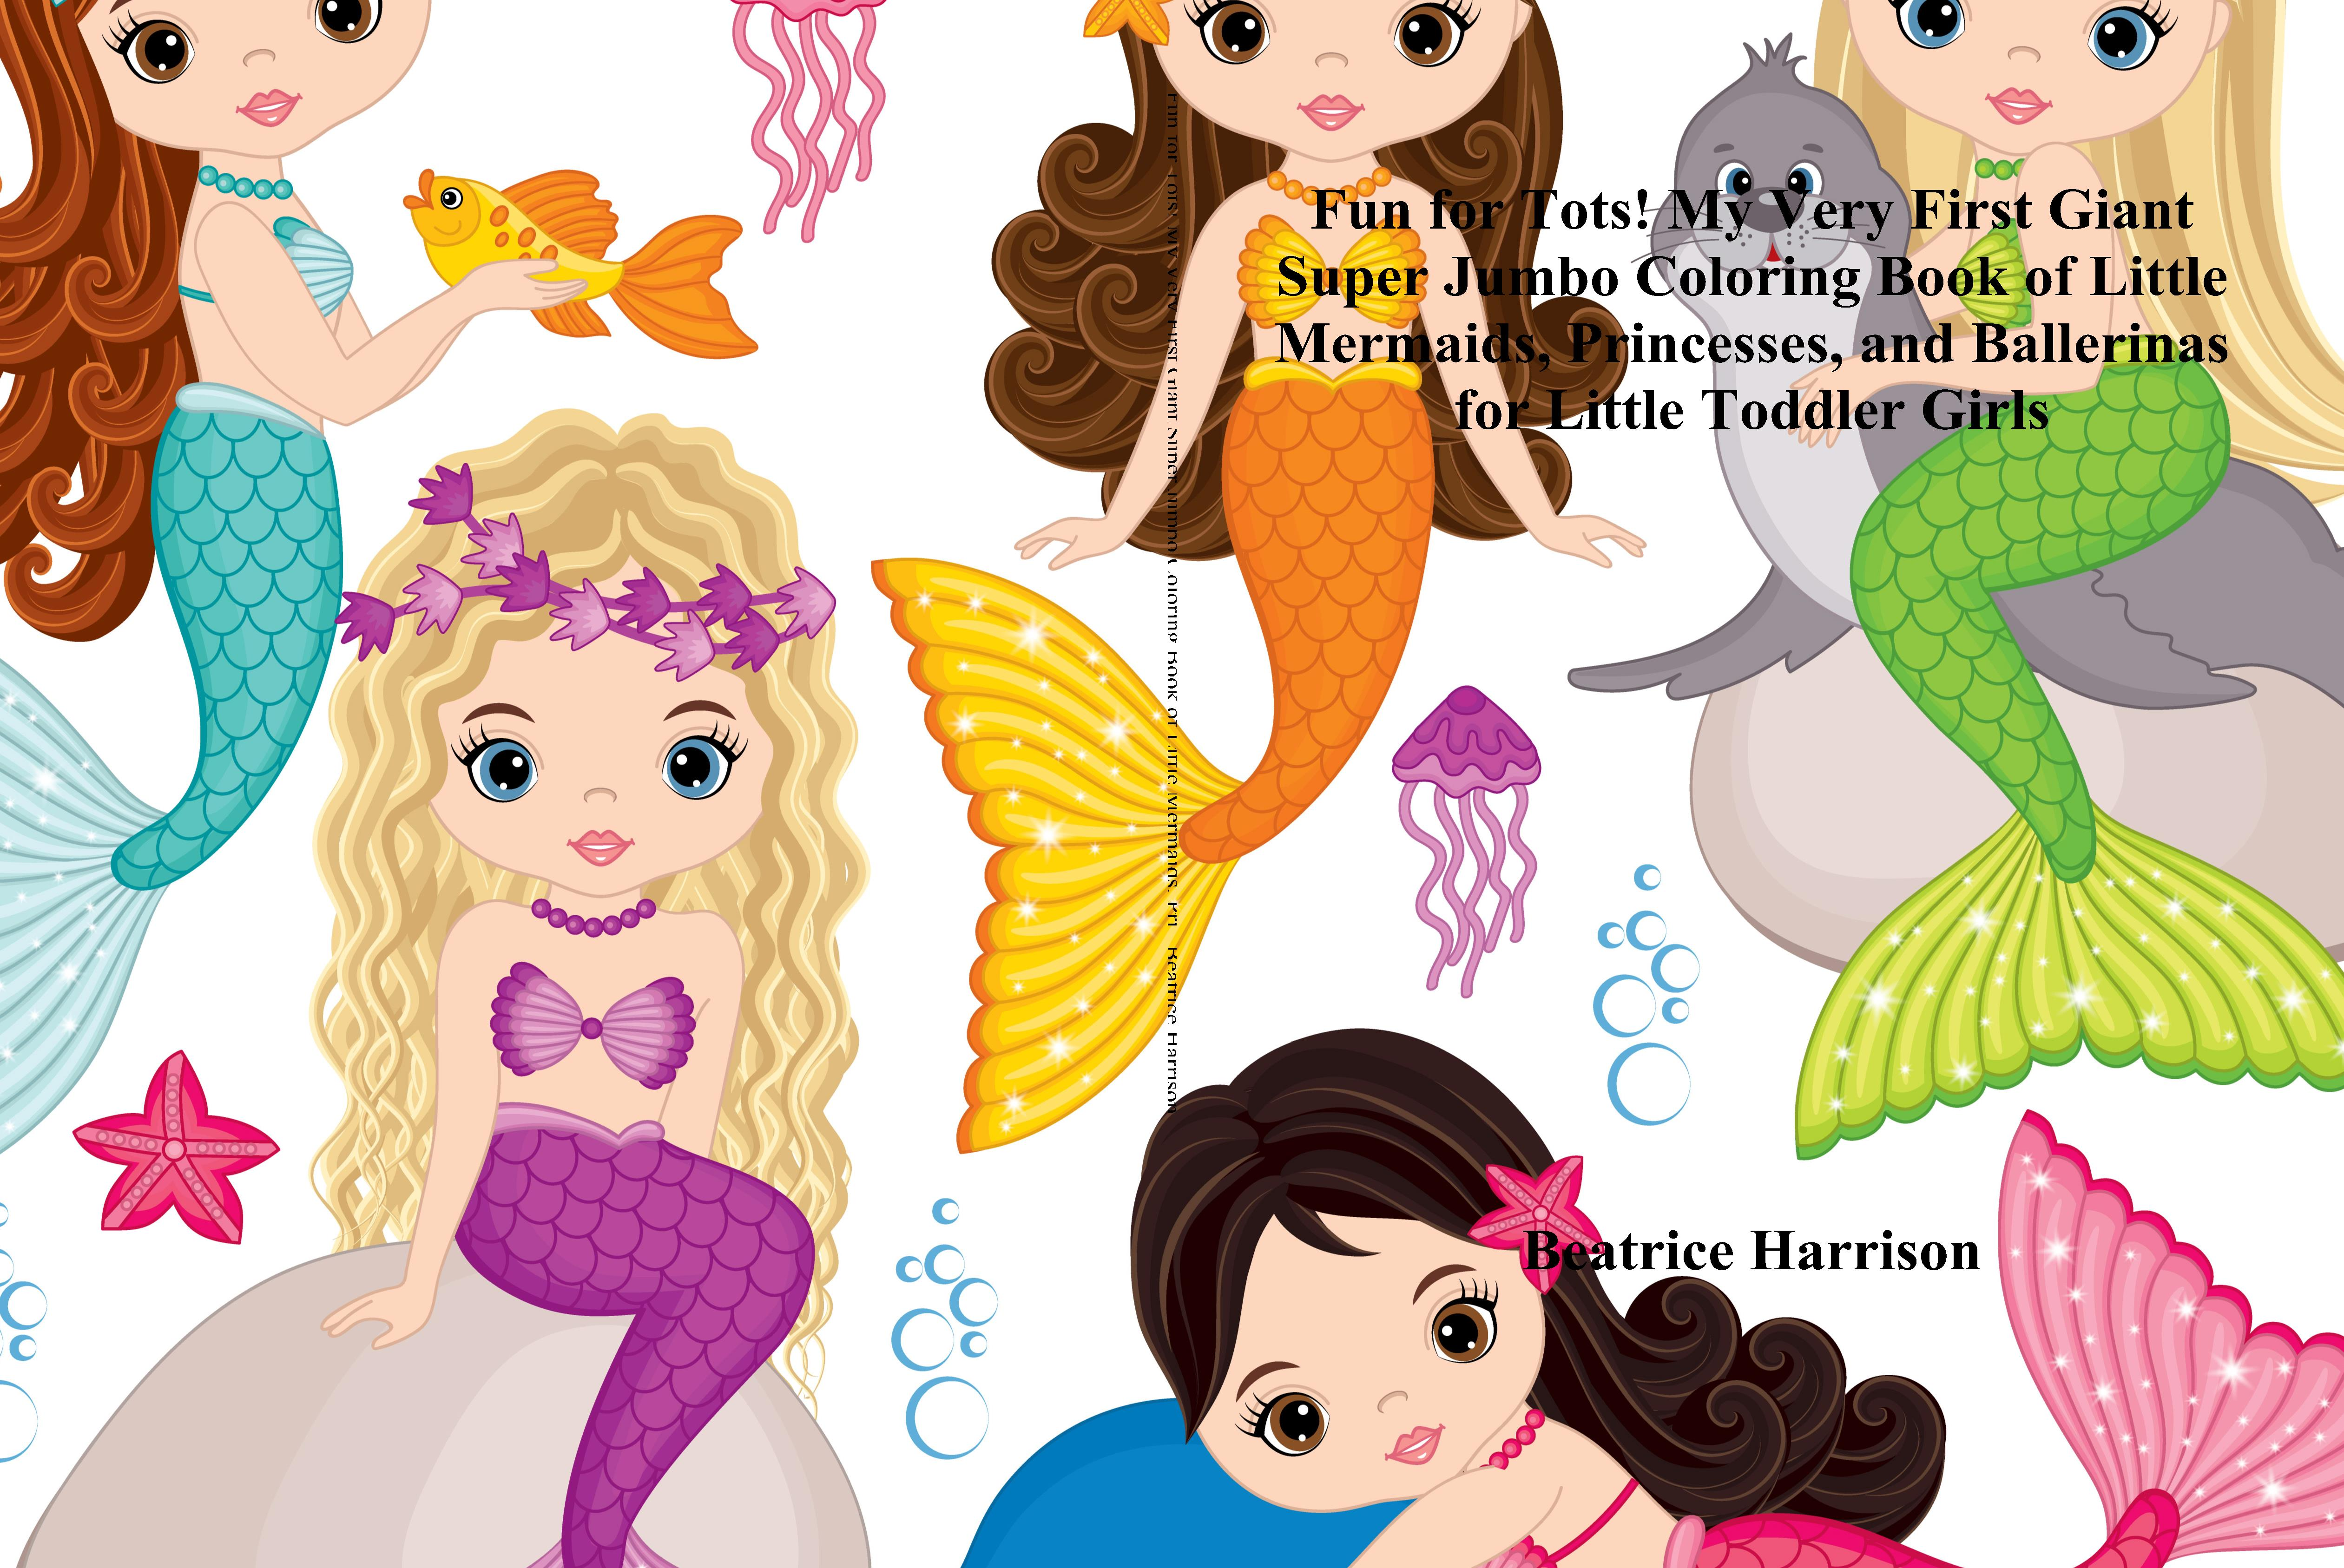 Fun for Tots! My Very First Giant Super Jumbo Coloring Book of Little Mermaids, Princesses, and Ballerinas for Little Toddler Girls cover image